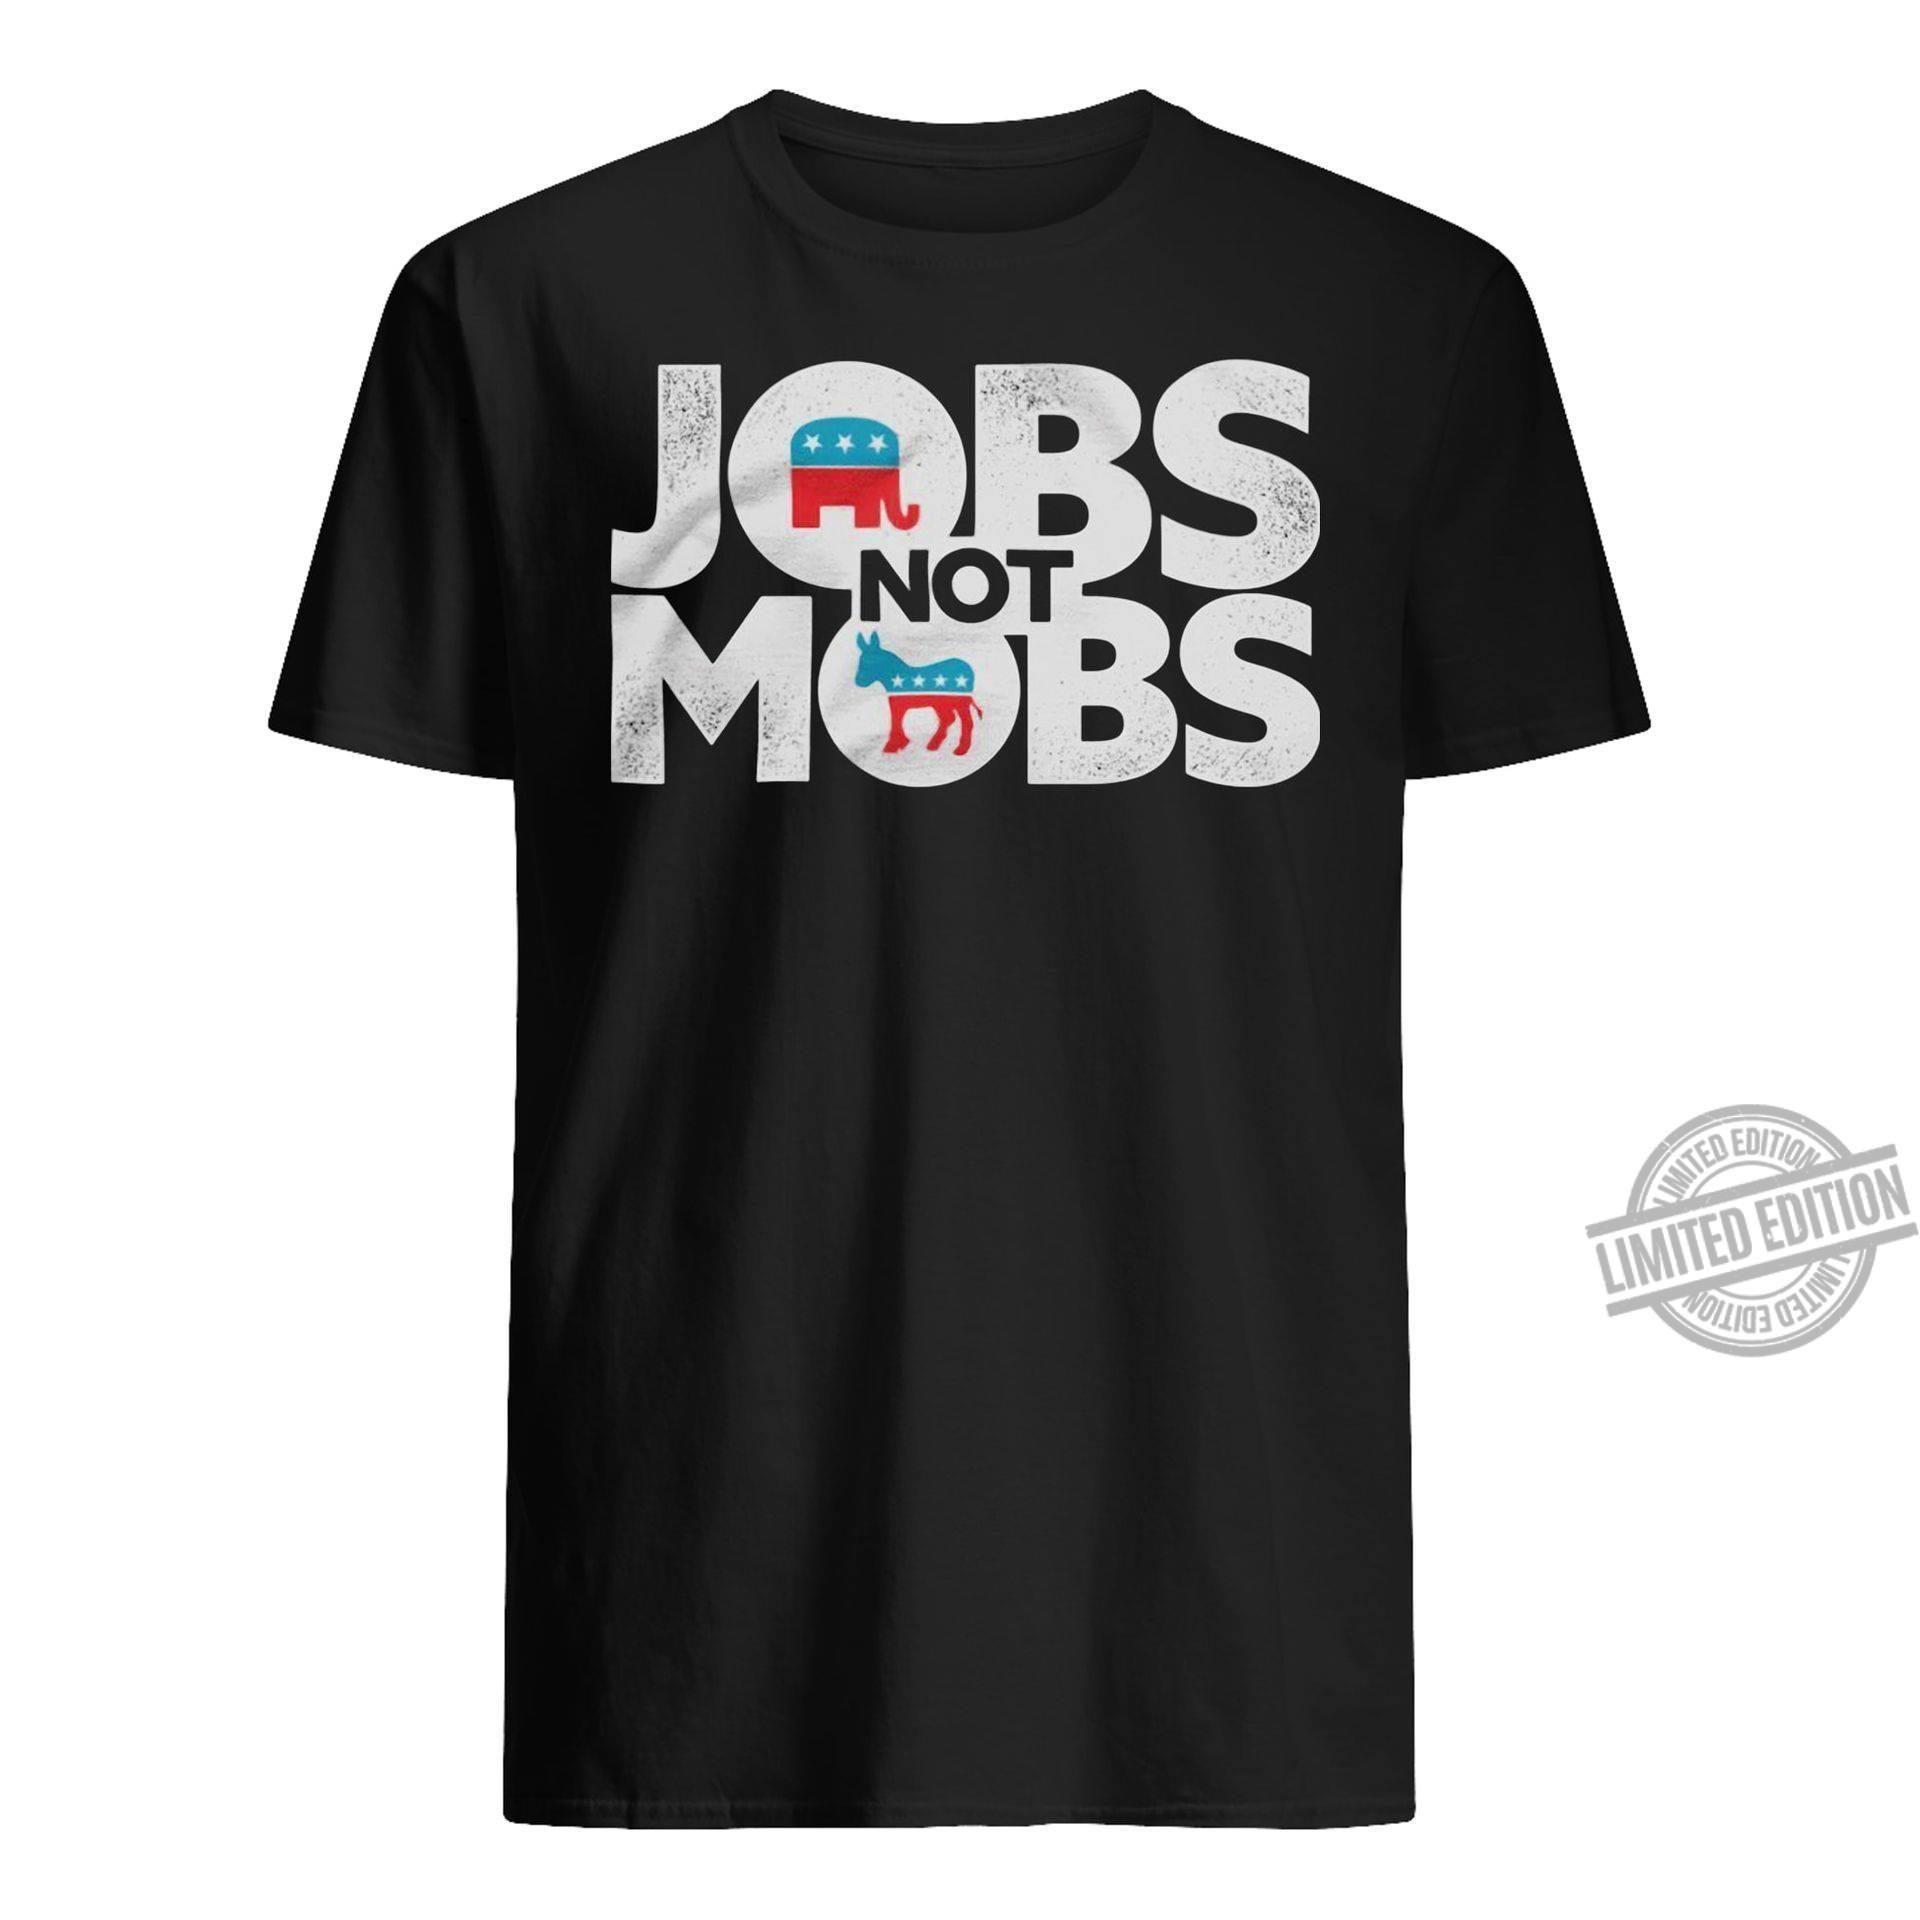 JOBS not MOBS – Vote for JOBS not MOBS Shirt